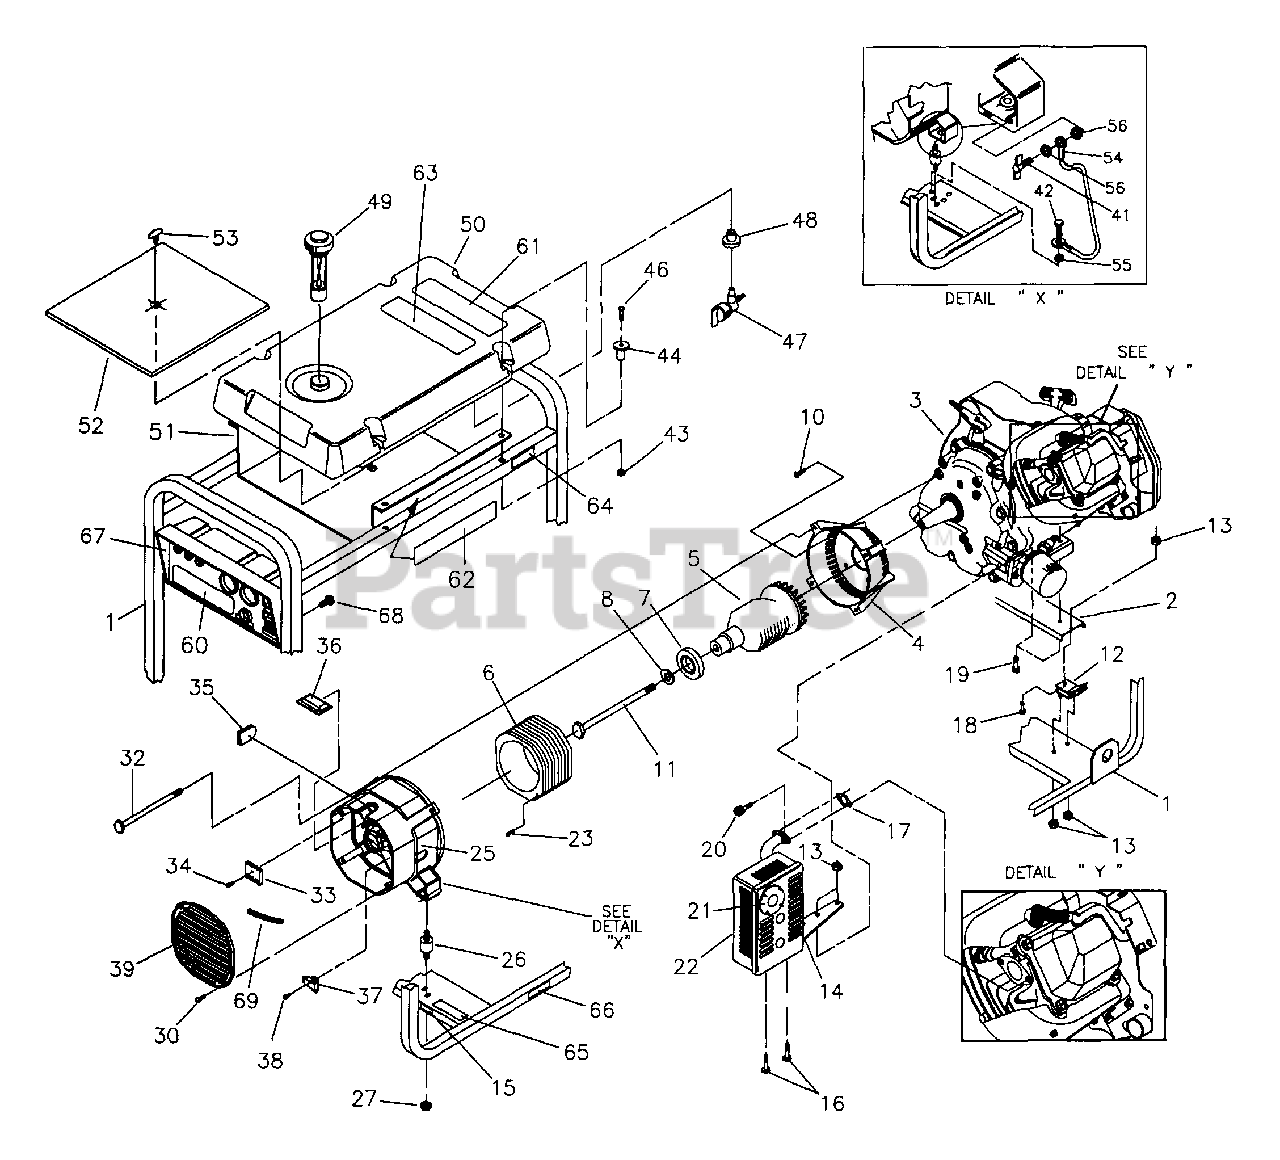 Generac Parts on the Main Unit Diagram for 9777-2